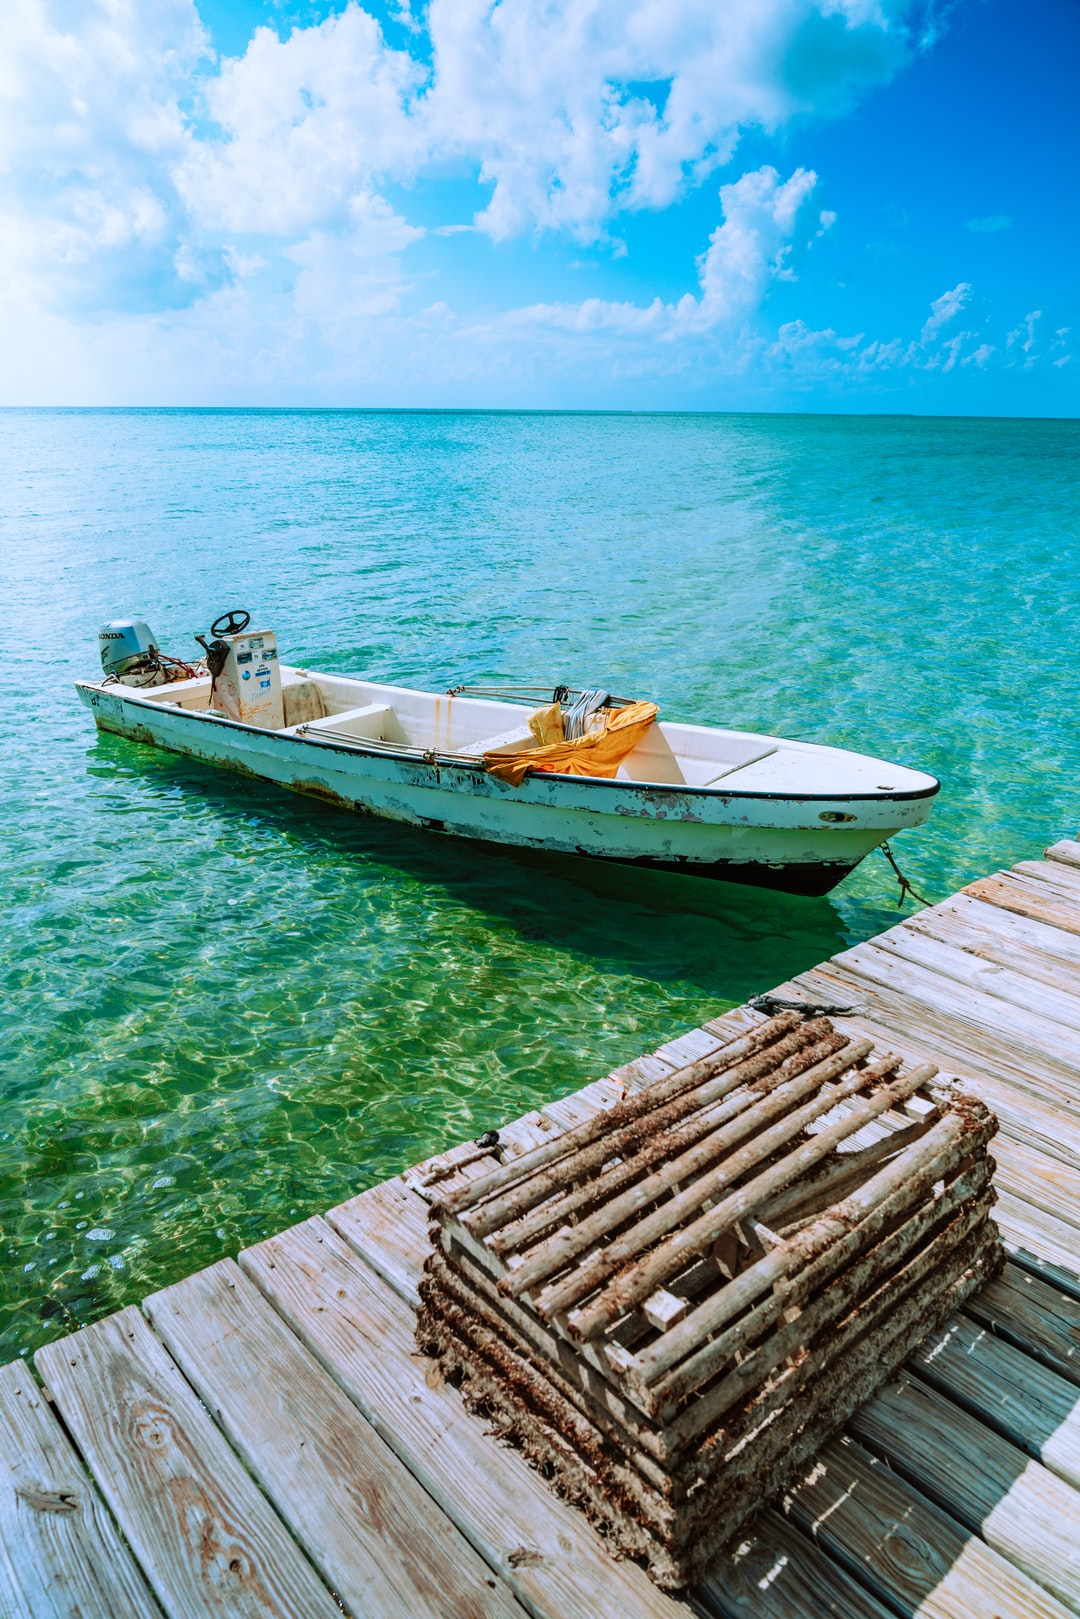 Small motor boat at a dock with a wooden crab trap.